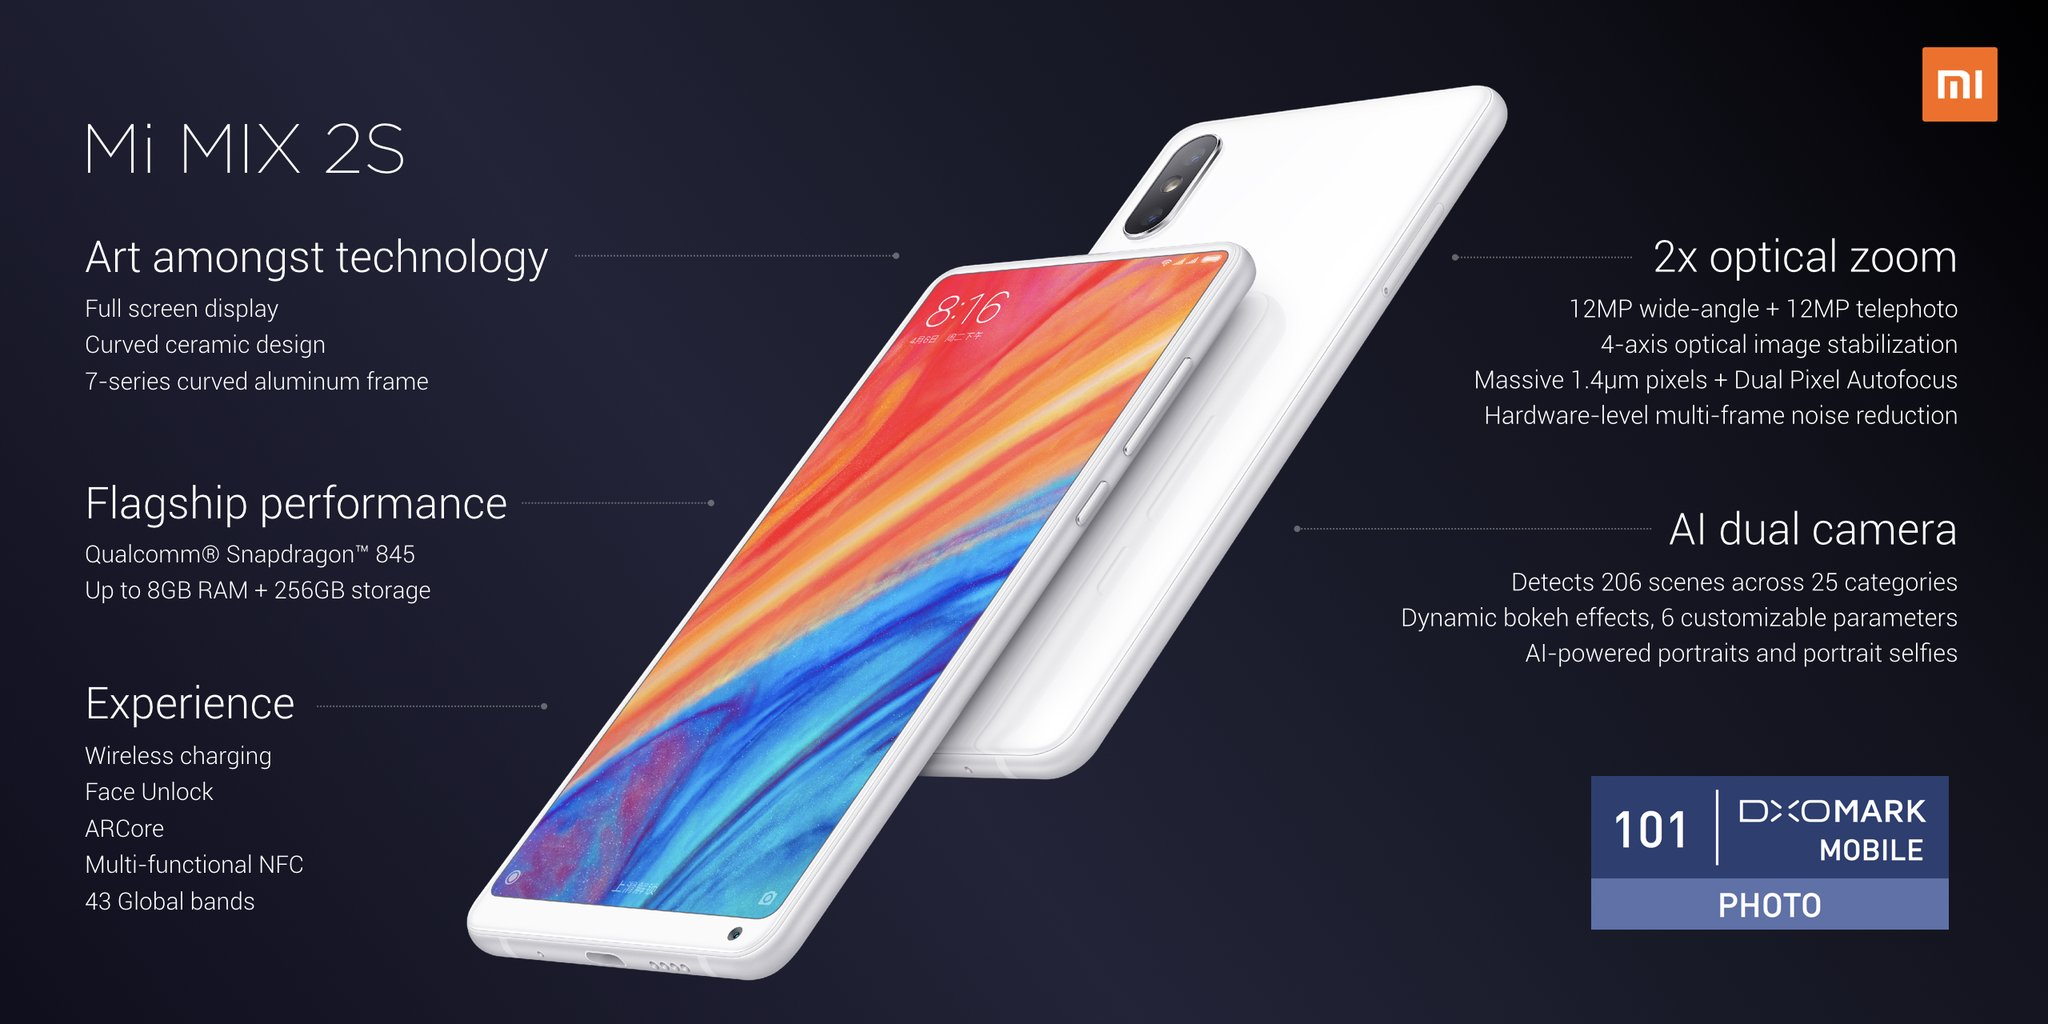 Xiaomi Launches the Mi MIX S2 Android Smartphone to Take ...